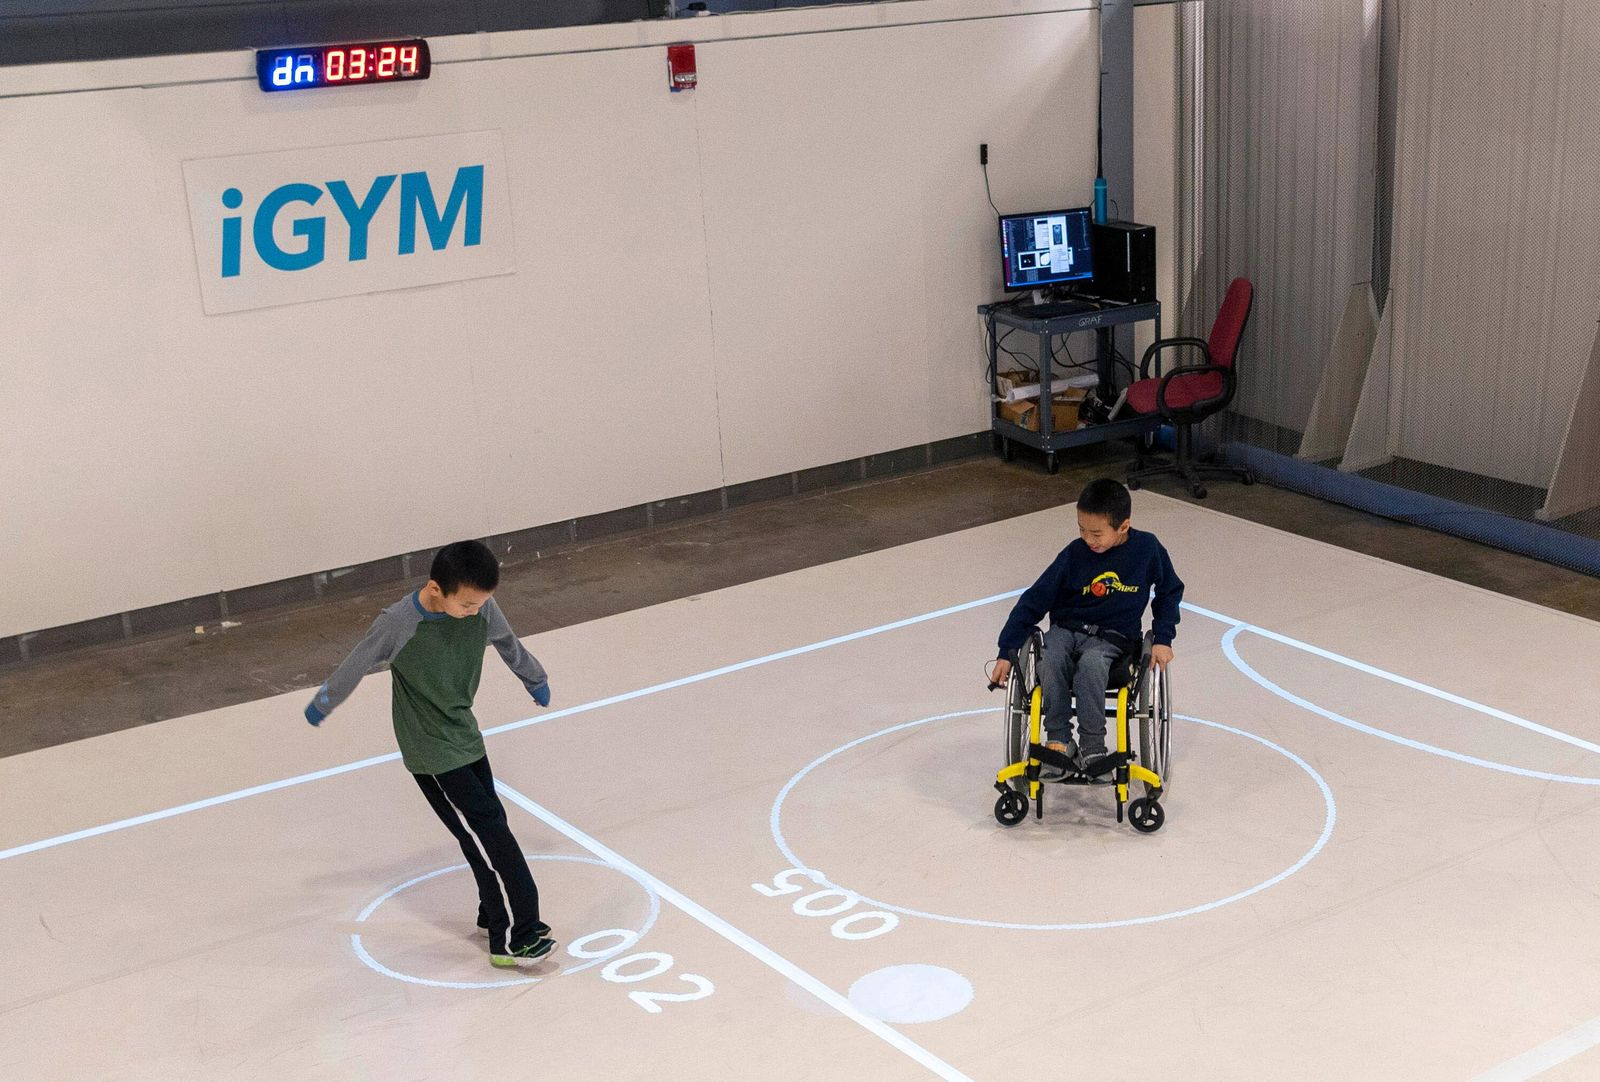 In this Nov. 17, 2019, photo provided by the University of Michigan, brothers Darren Kreps, left, and Bryan Kreps play a game modeled after soccer and air hockey using the iGYM system at the university in Ann Arbor, Mich. A University of Michigan research team has created iGYM, an augmented reality system that allows people with different levels of mobility to play and exercise together. (Roger Hart/University of Michigan via AP)